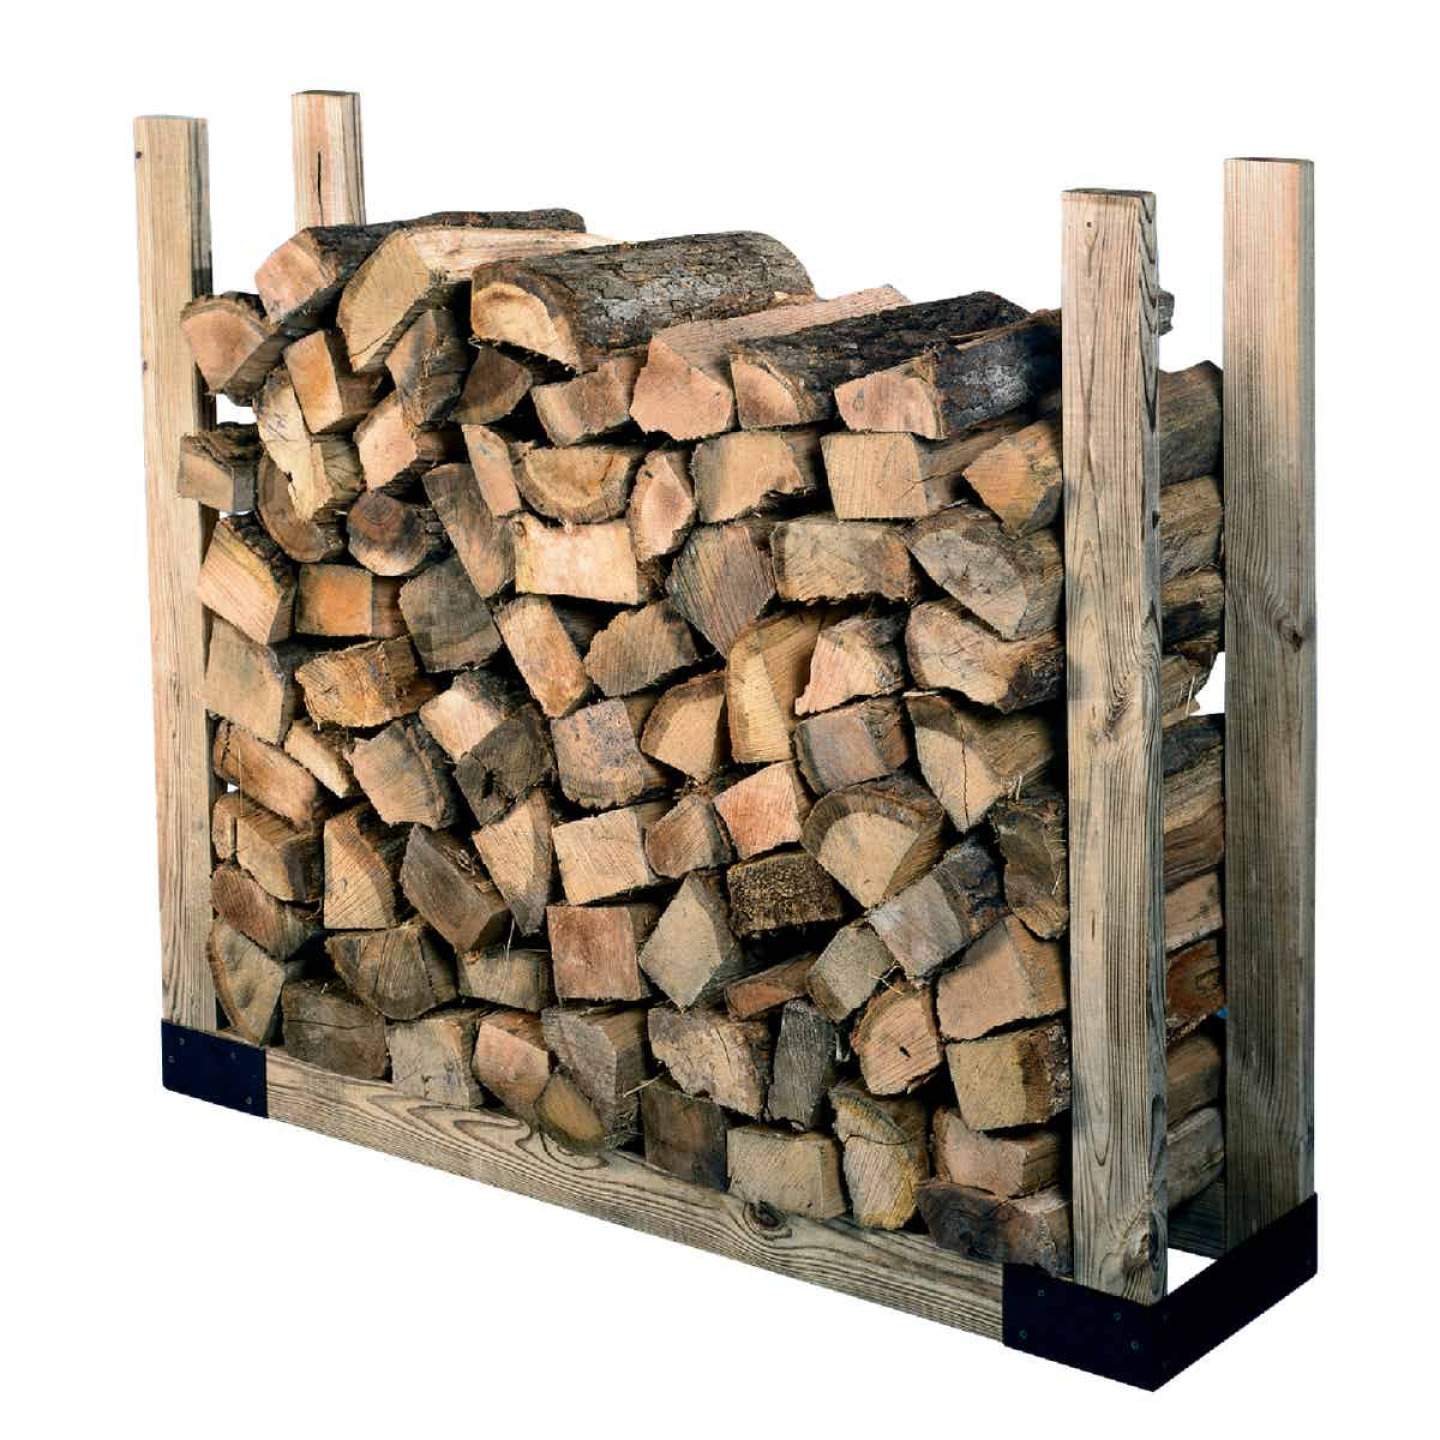 Shelter Brackets 14 In. Log Rack Kit Image 1